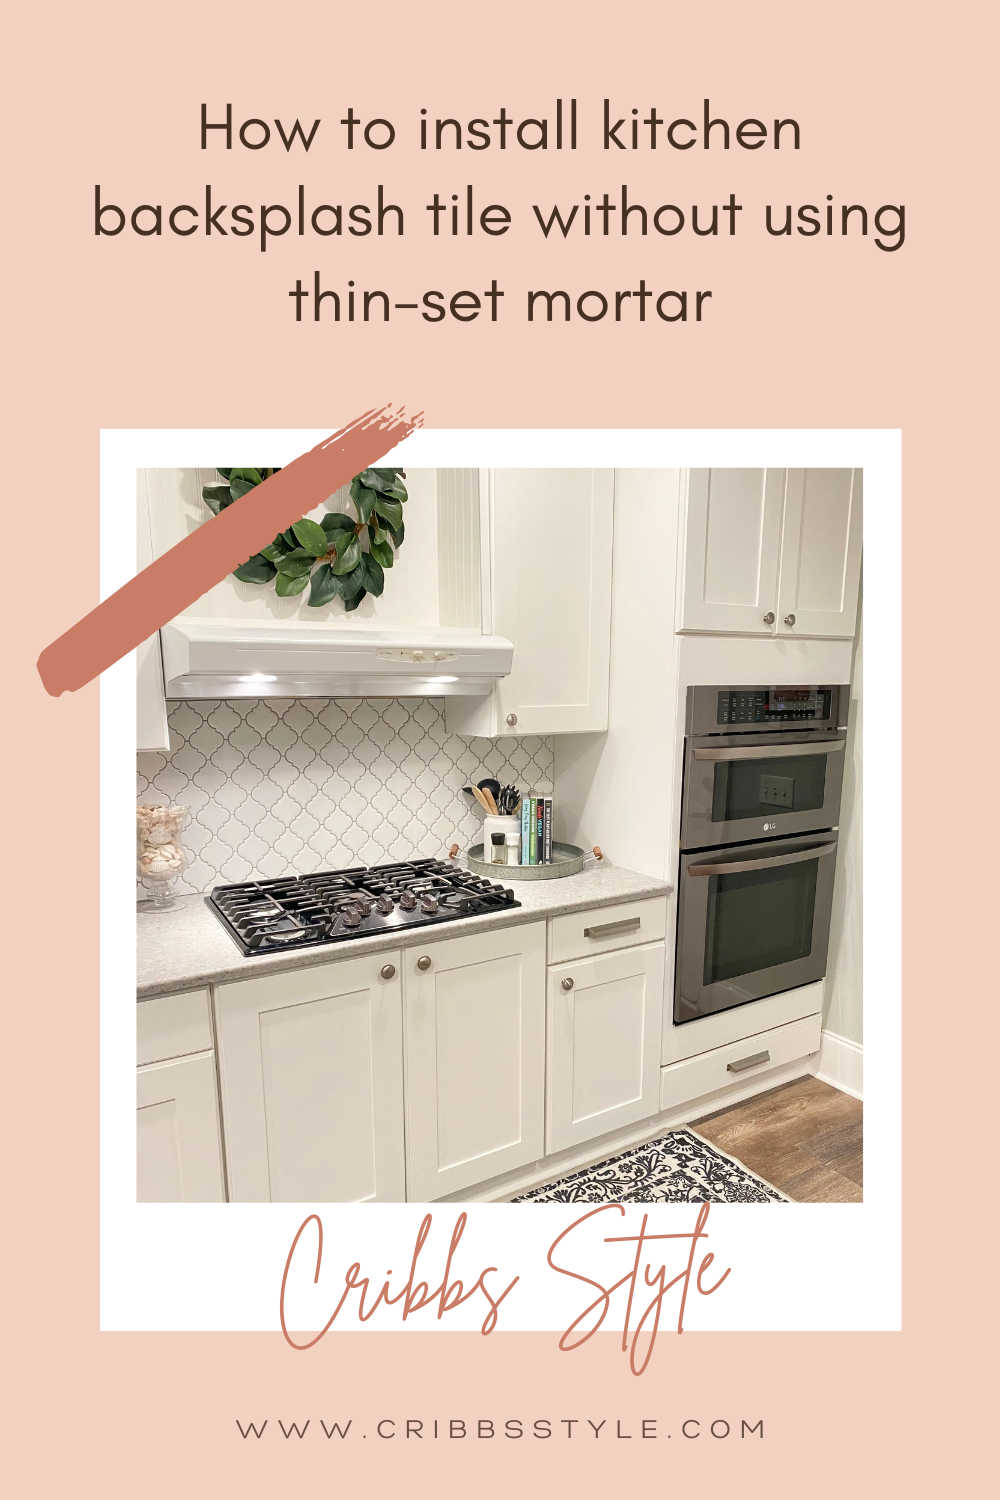 How To Install Kitchen Backsplash Tile Using Adhesive Mat Instead Of Thin Set Mortar In 2021 Kitchen Tiles Backsplash Diy Kitchen Backsplash Backsplash